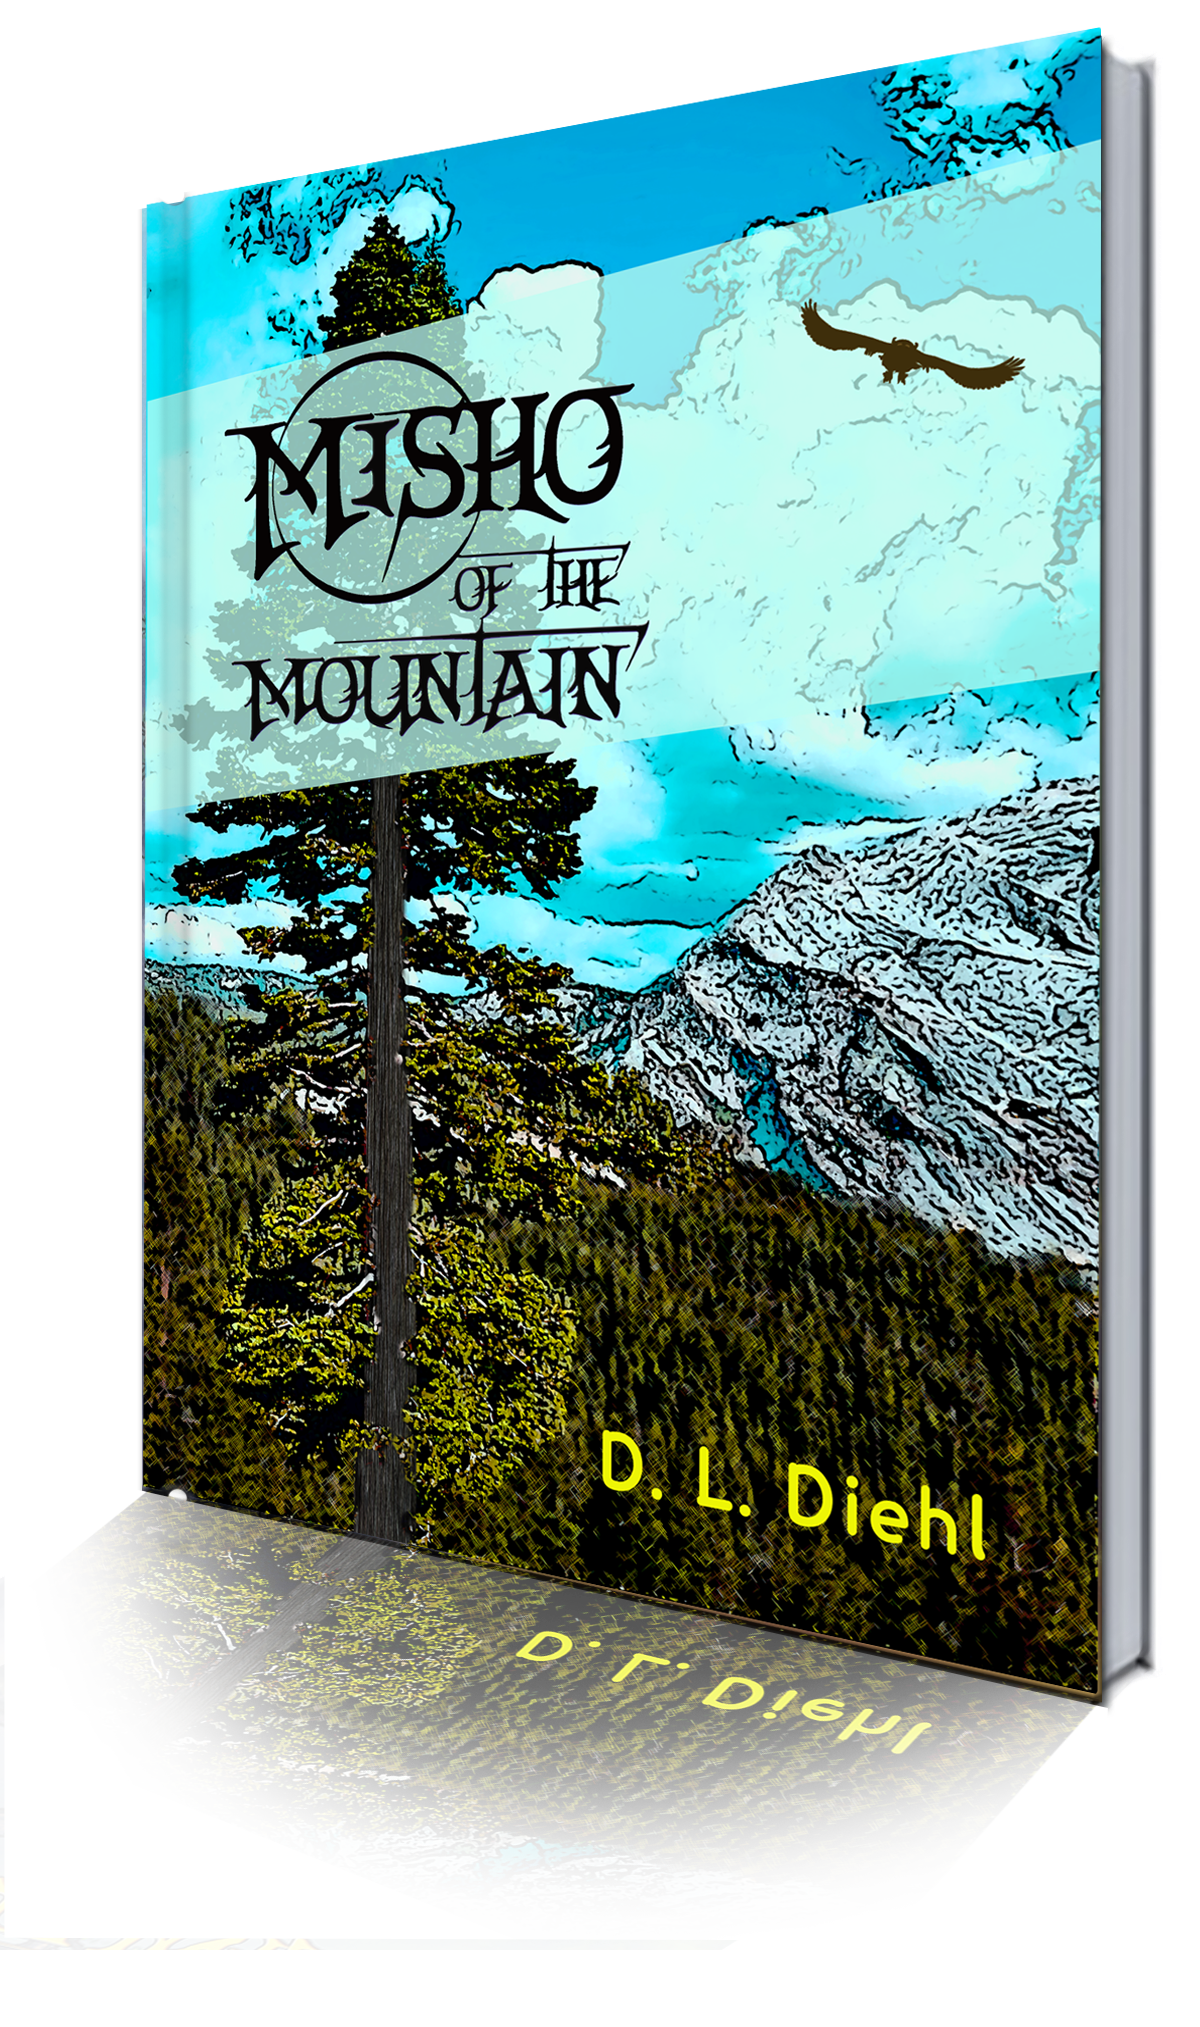 Book Image for Misho of the Mountain